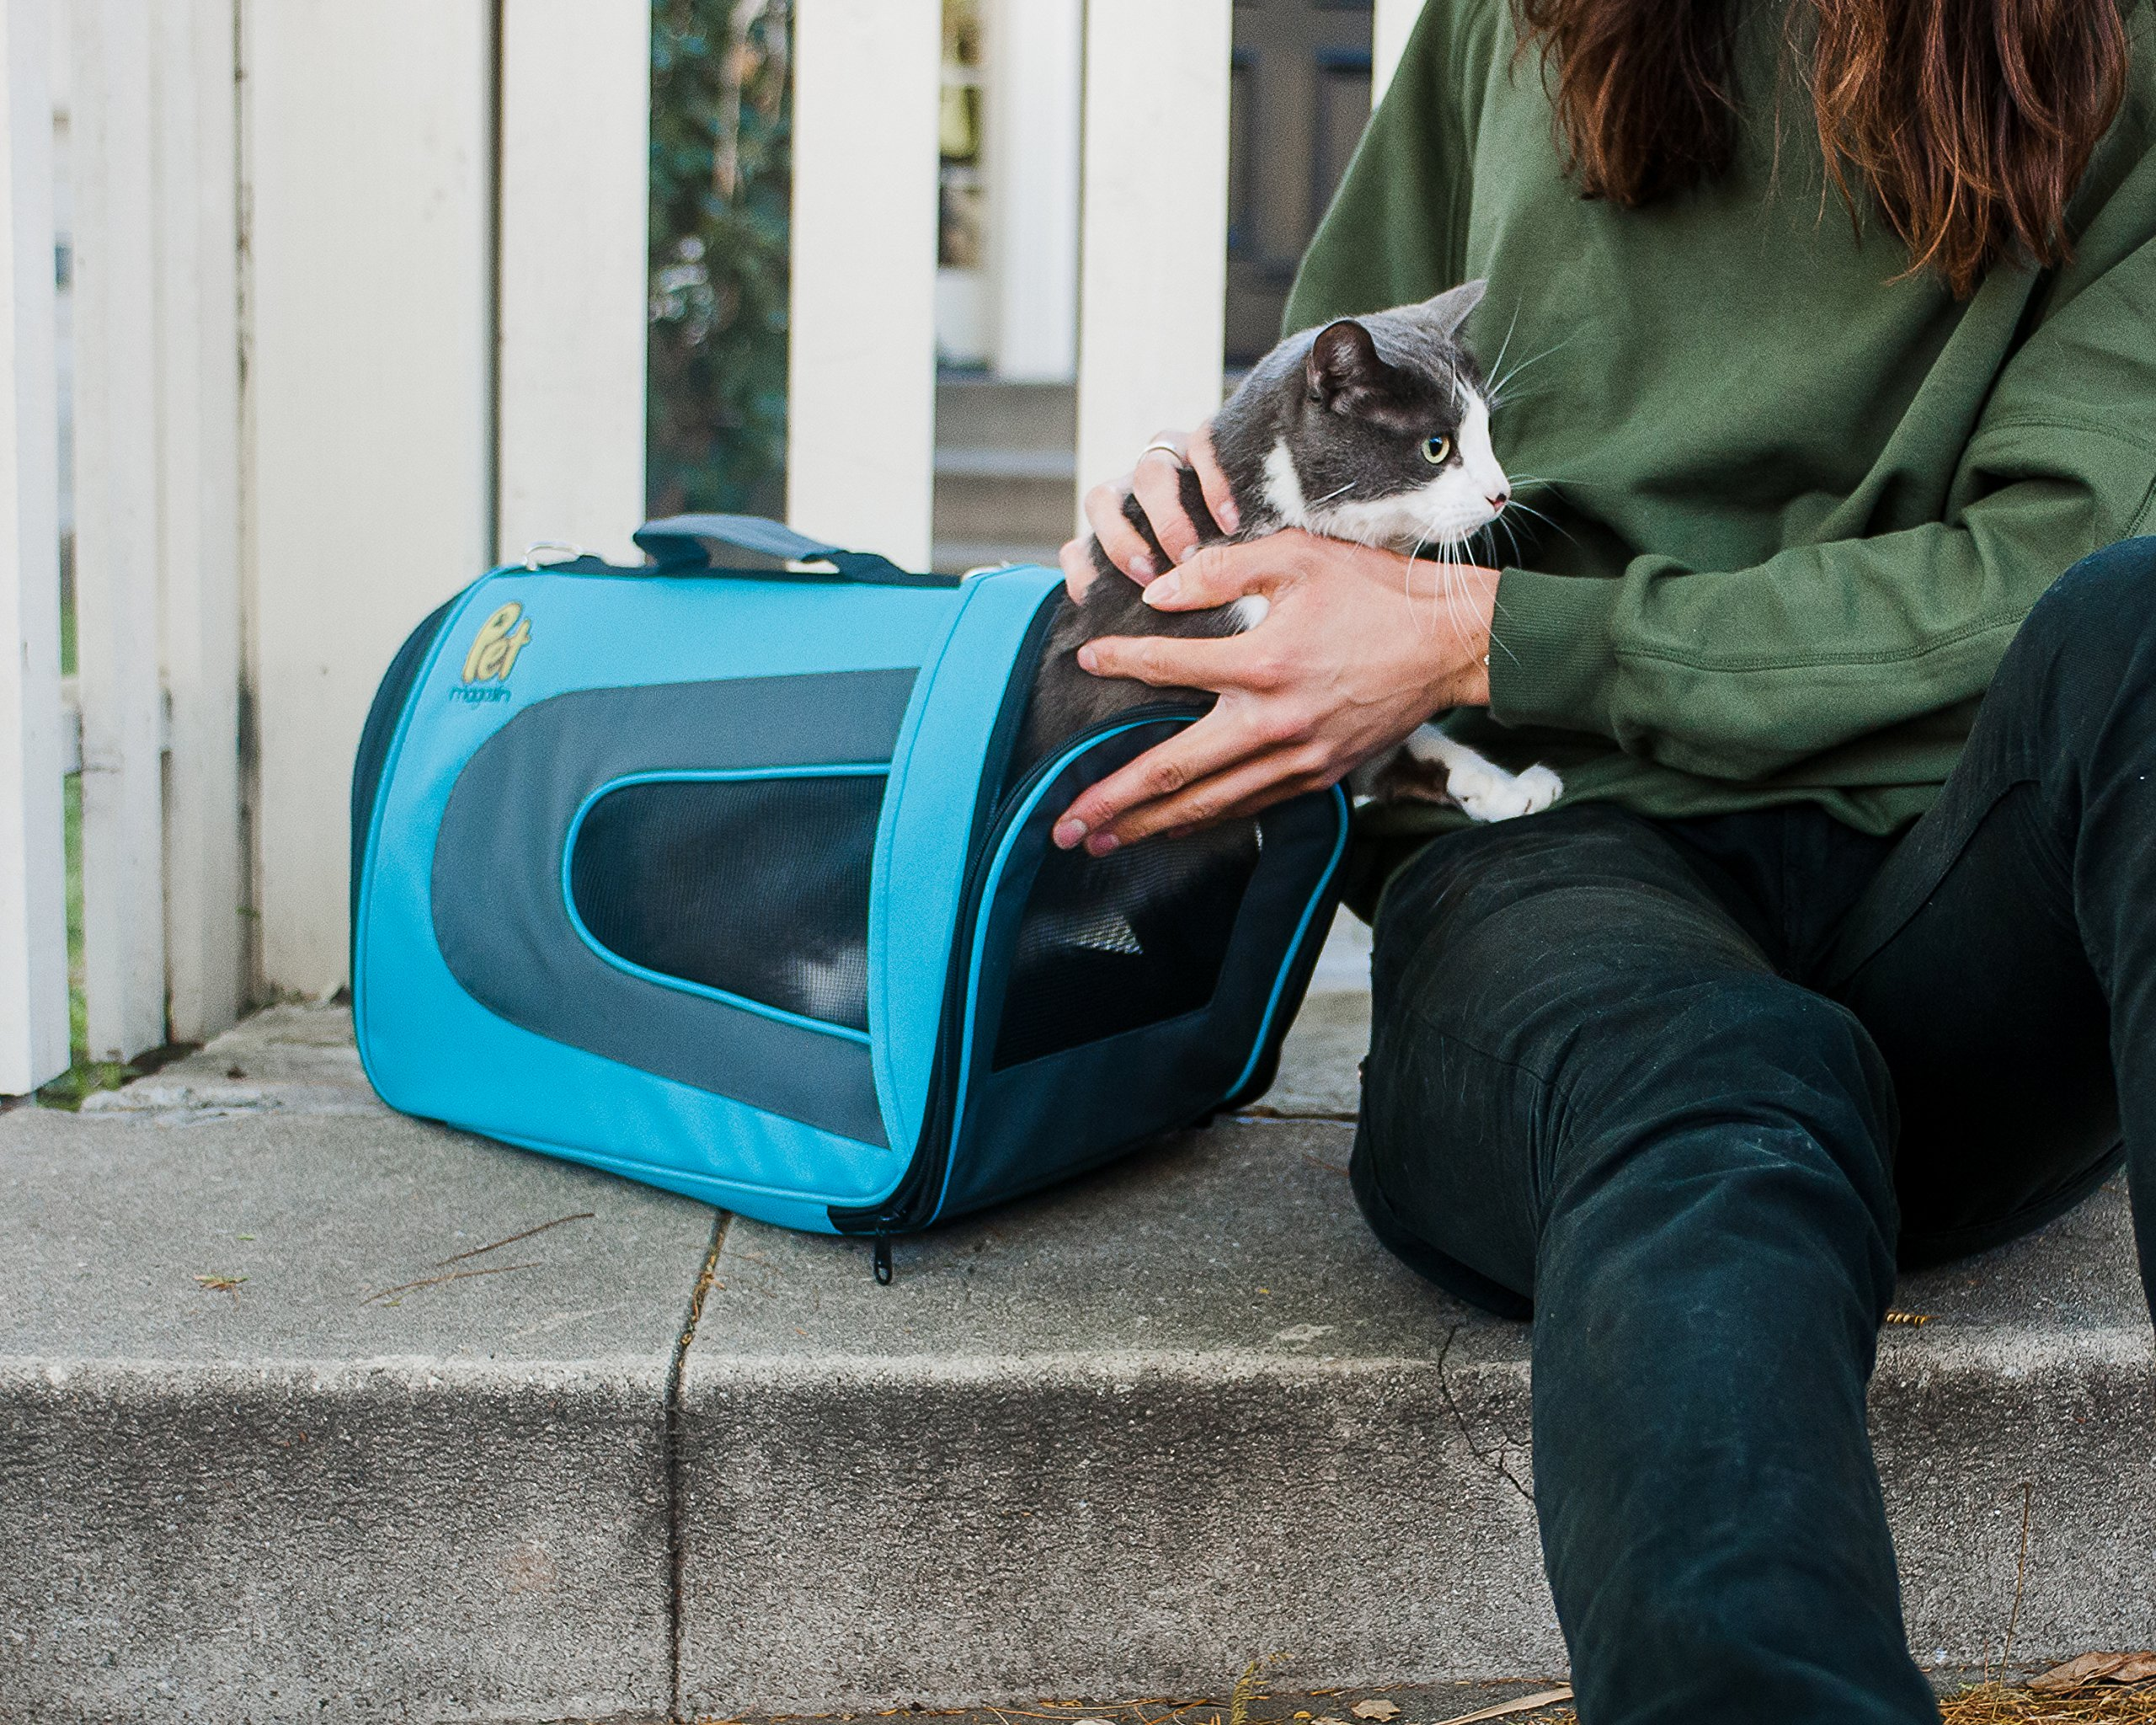 Pet Magasin Soft-Sided Pet Travel Carrier (Airline Approved) for Cats, Small Dogs, Puppies and Other Pets by (Large, Blue) by Pet Magasin (Image #6)